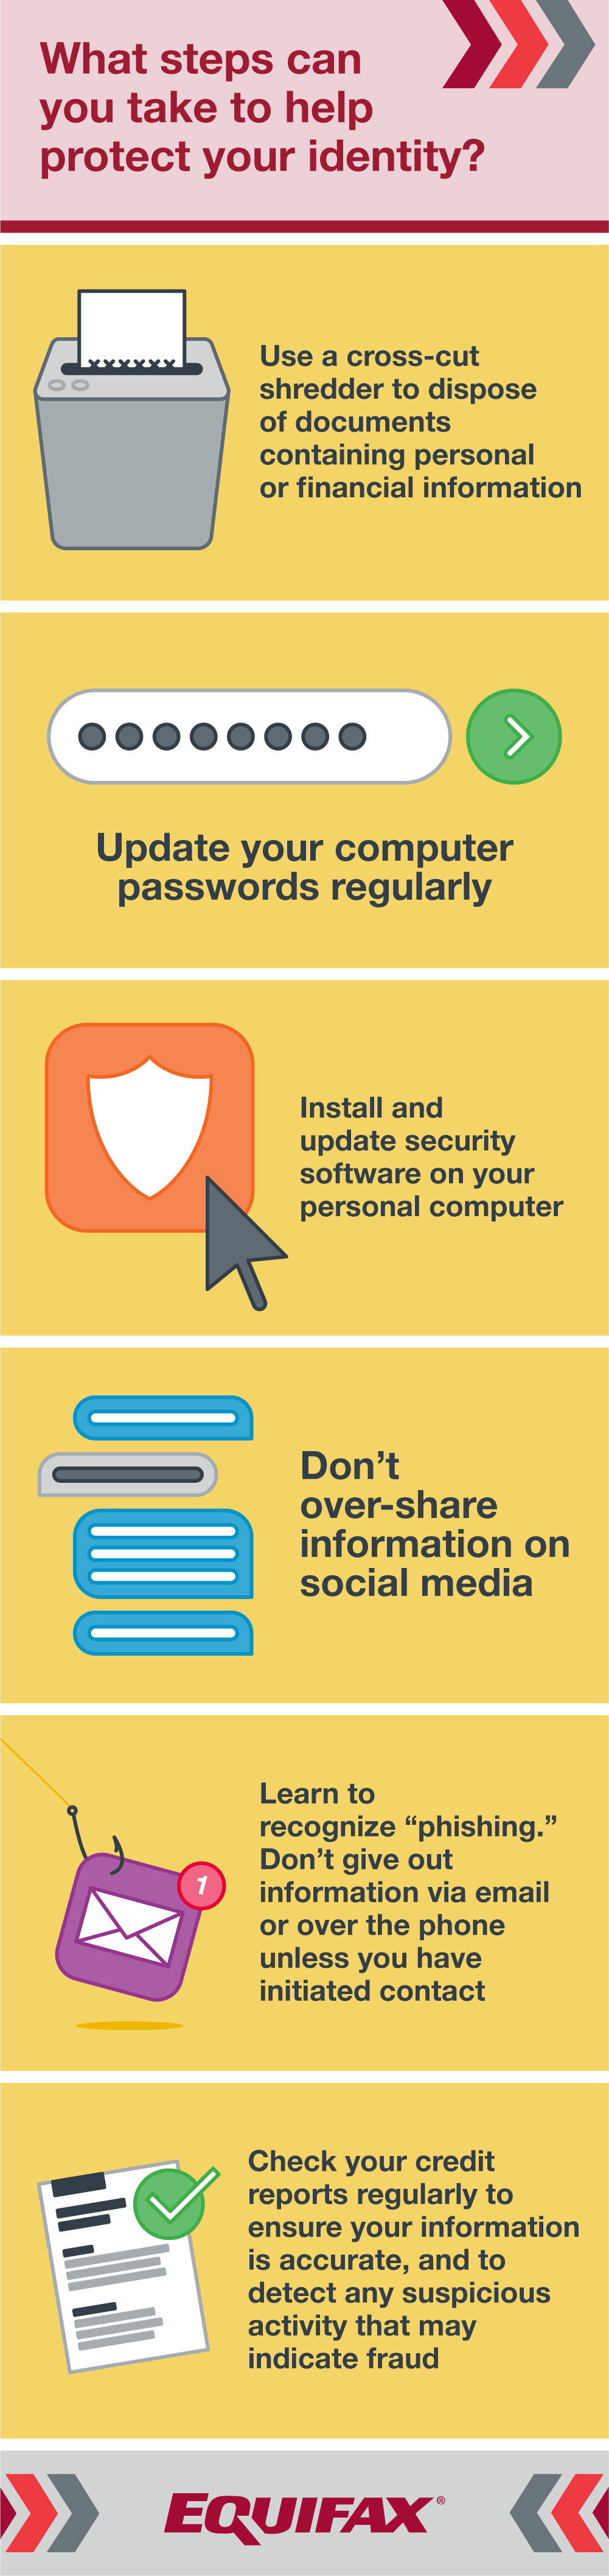 steps to take to protect your identity infographic